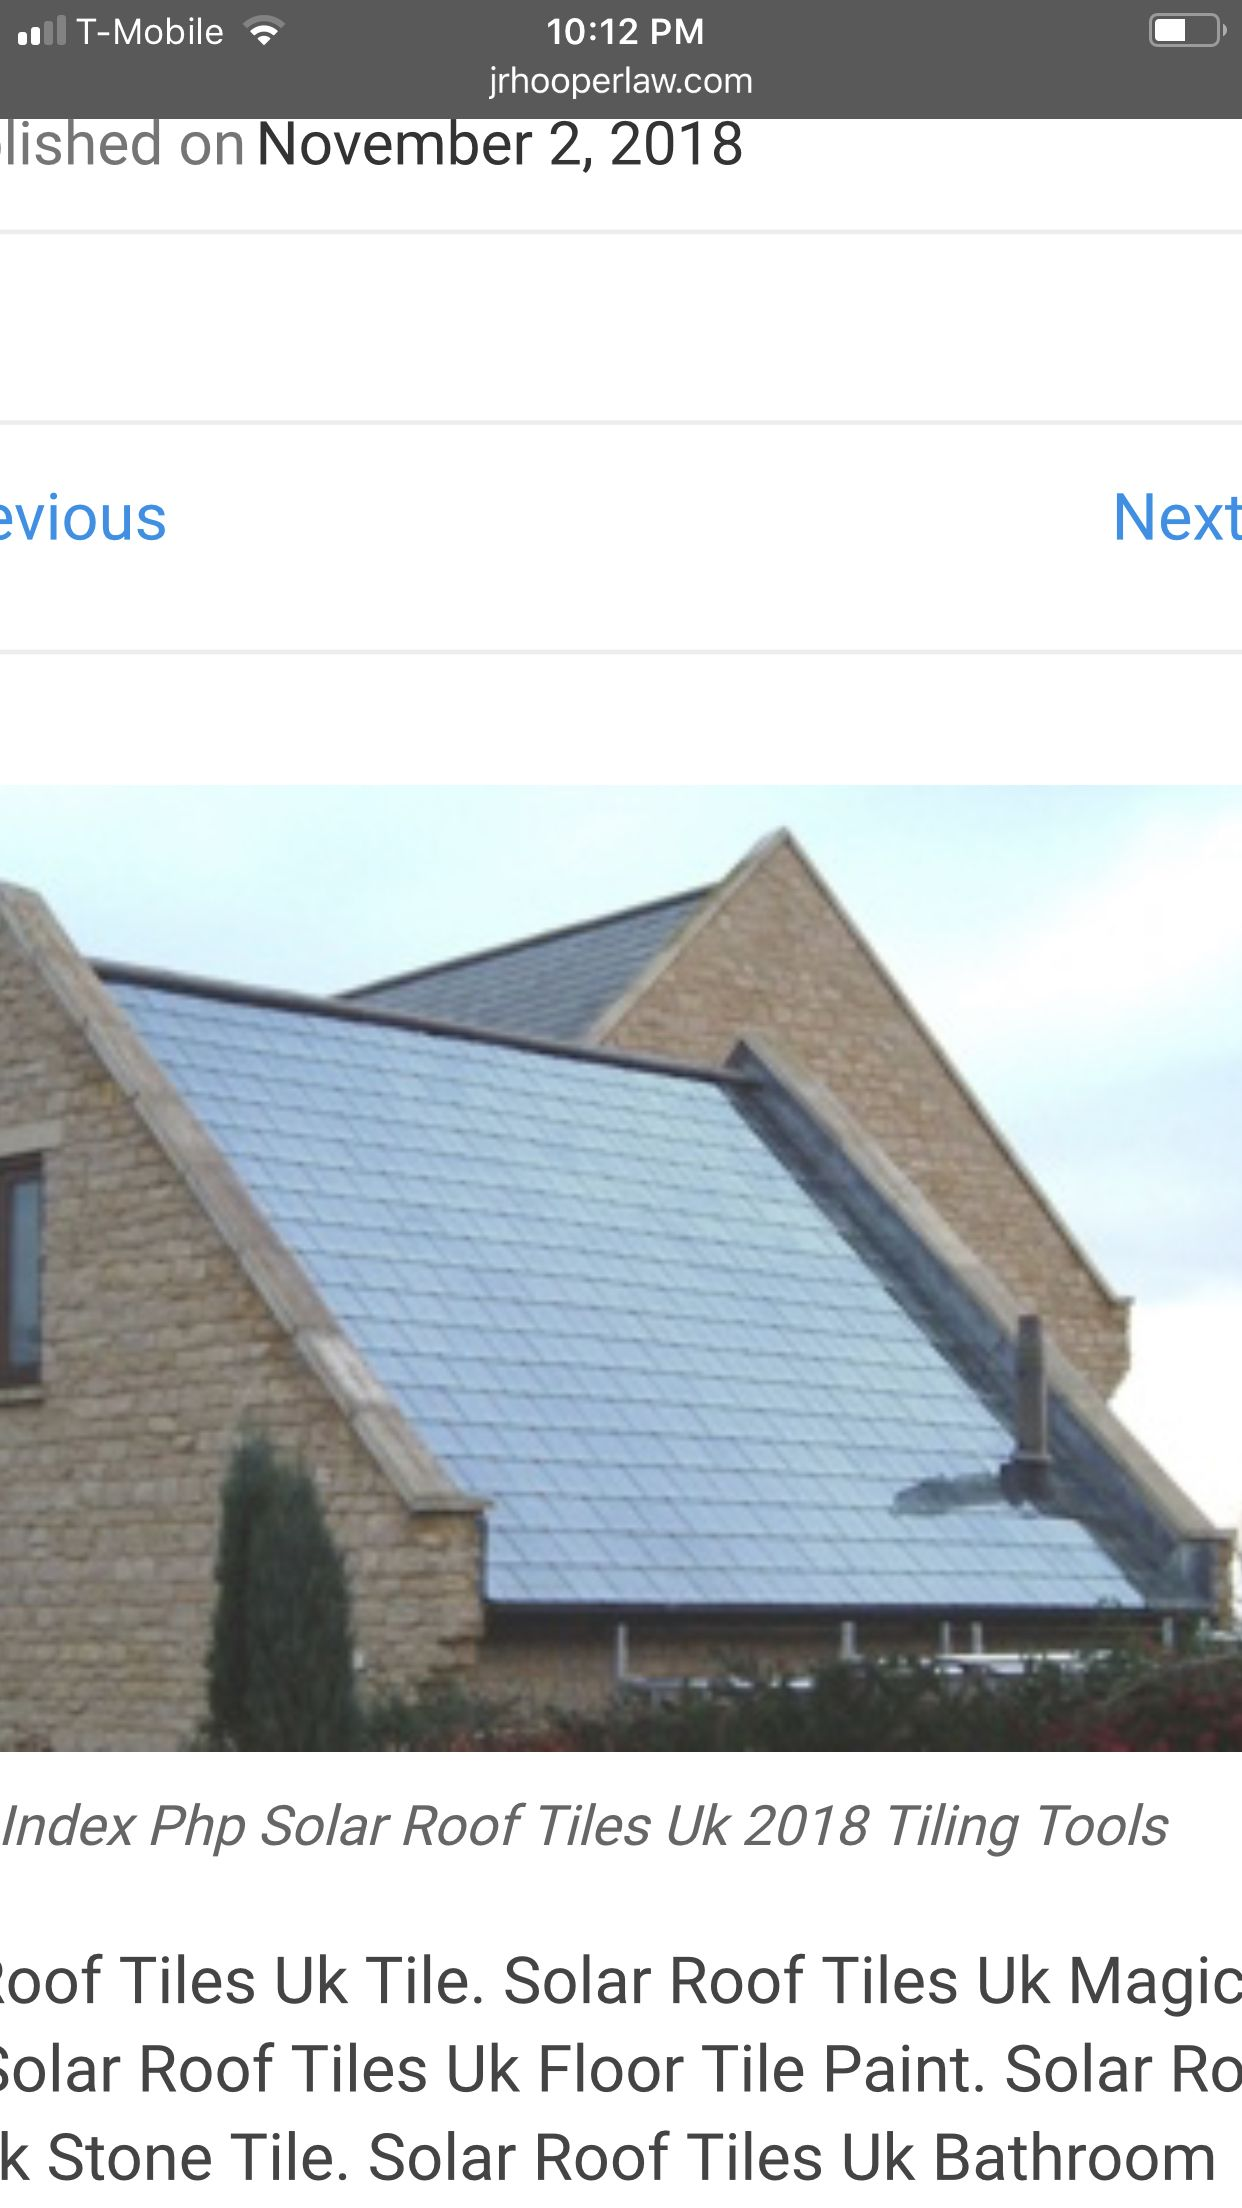 Pin By Nicole Hill On Arch And Materials Tiles Uk Solar Roof Tiles Painting Tile